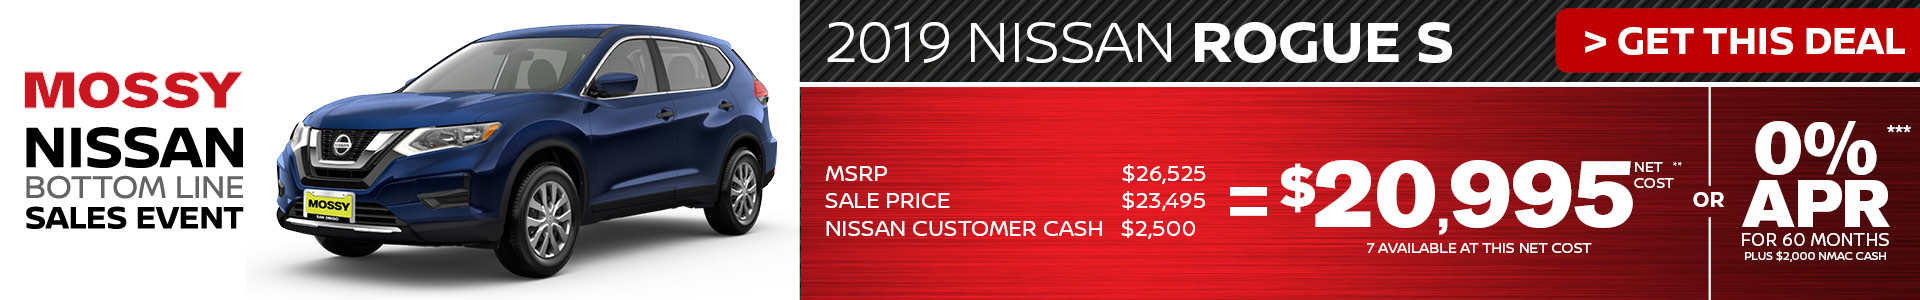 Mossy Nissan - Nissan Rogue S $20,995 Purchase